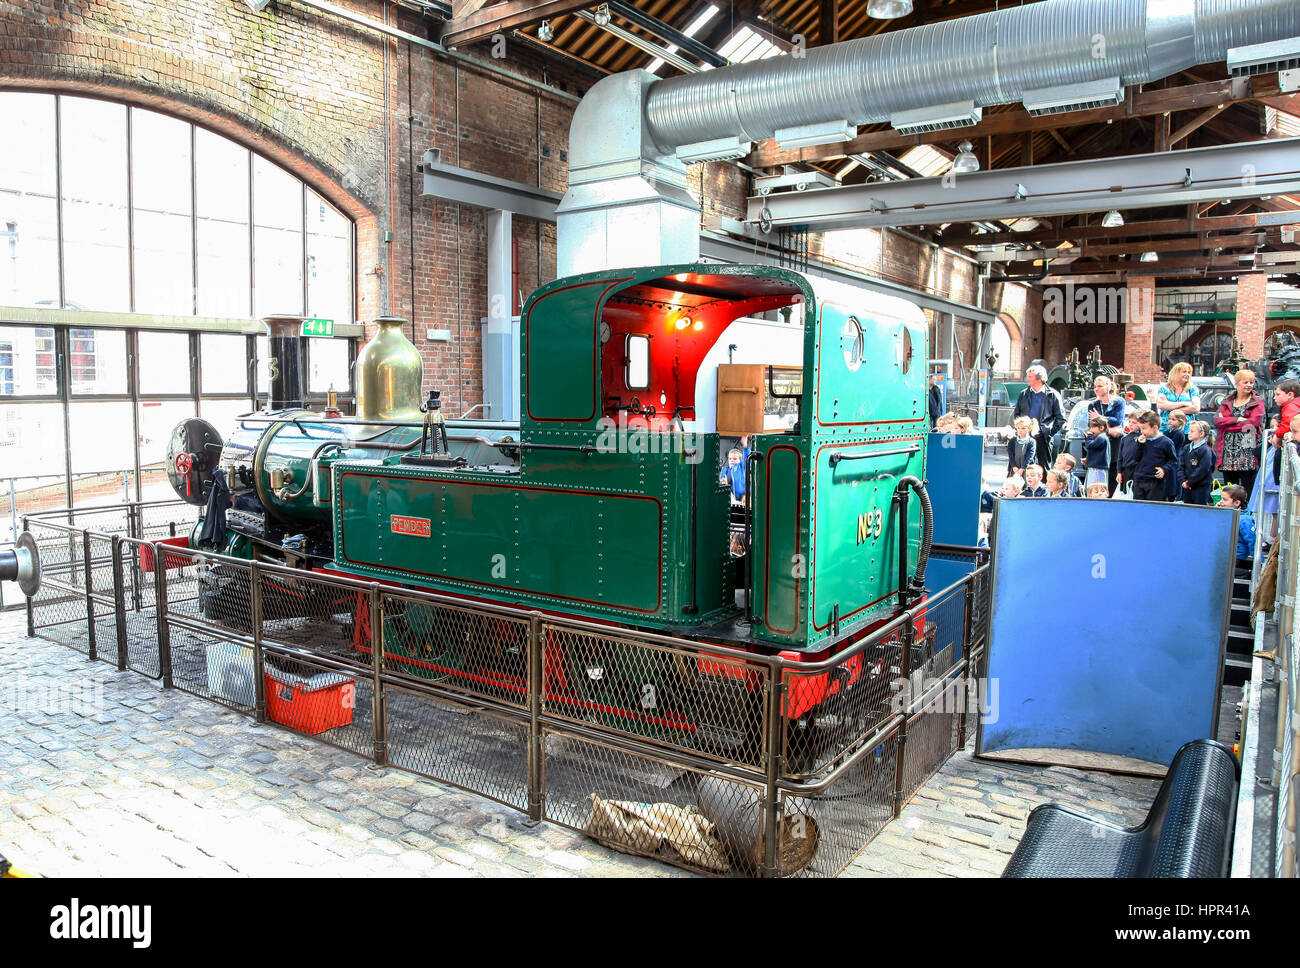 """Tank locomotive """"Pender"""" on display at the Manchester Museum of Science and Industry, Liverpool Road, Manchester, - Stock Image"""